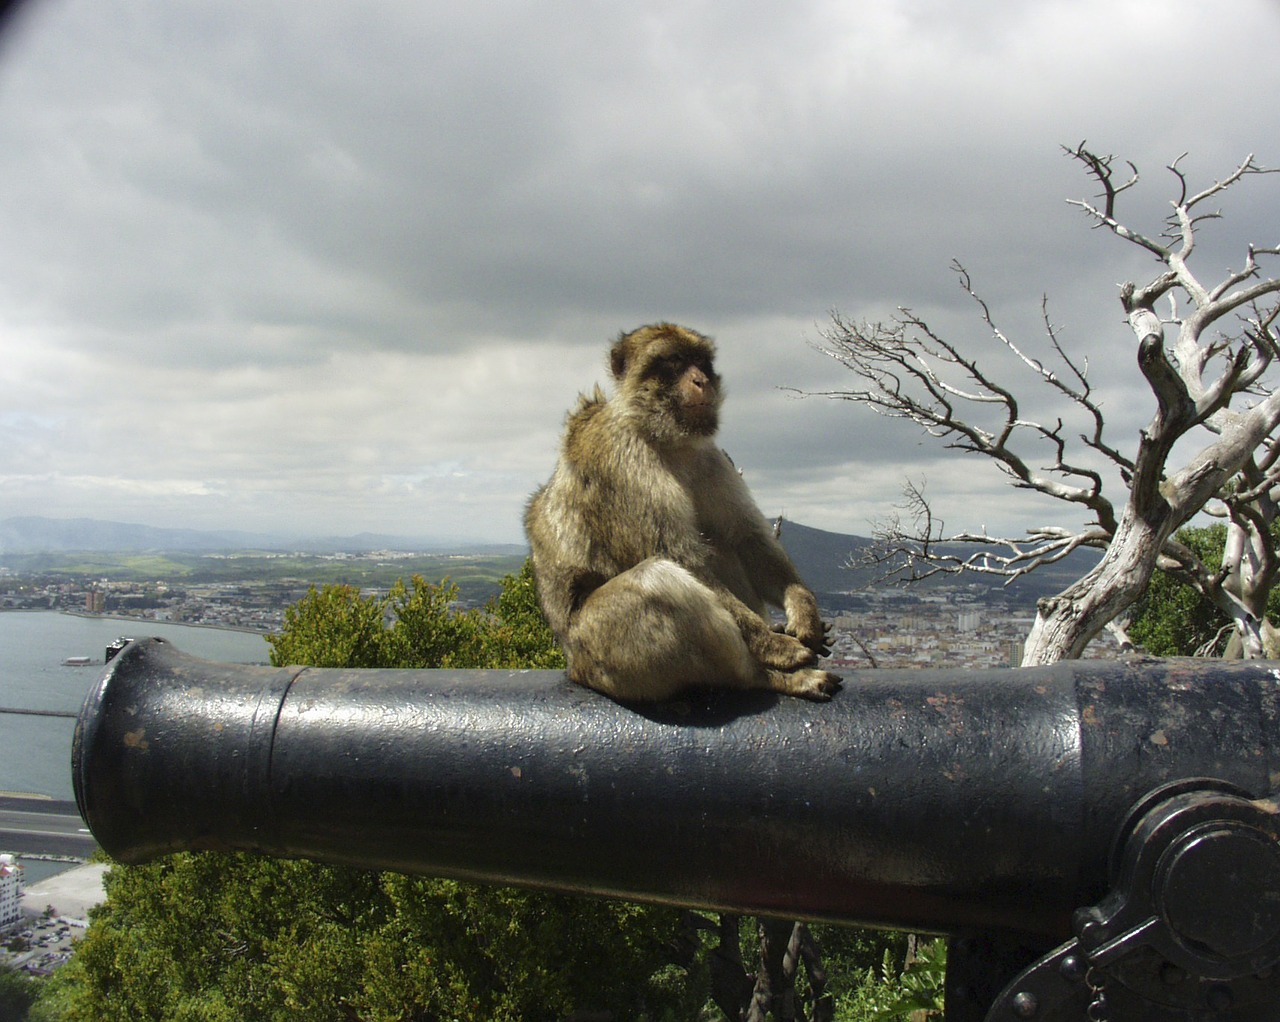 gibraltar,monkey,cannon,animal,europe,mammal,common macaque,berberaffe,primate,free pictures, free photos, free images, royalty free, free illustrations, public domain